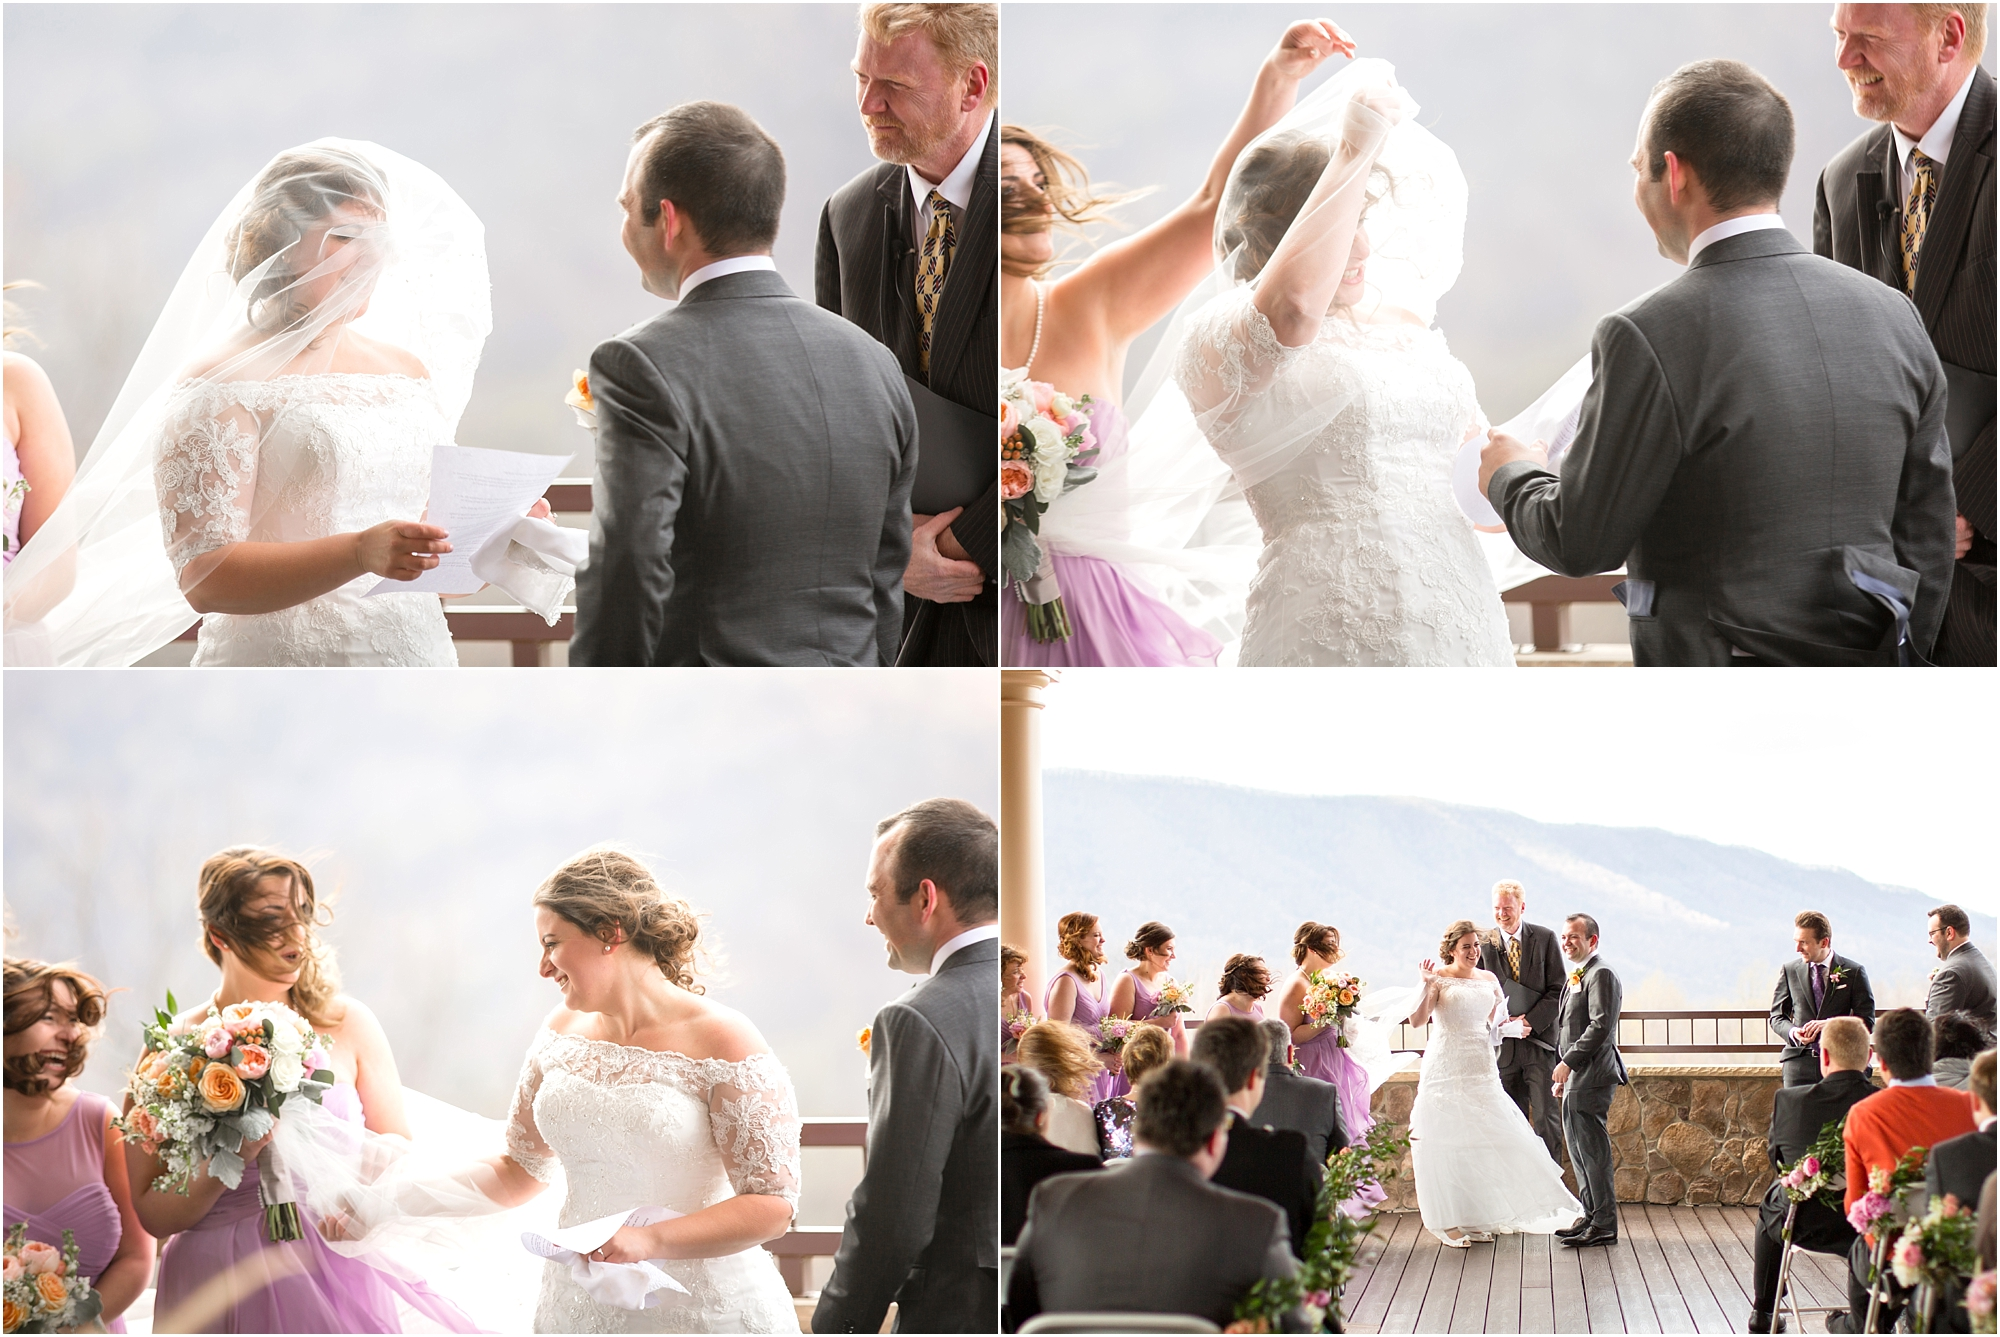 Haha! Janet was over that veil halfway throug the ceremony.